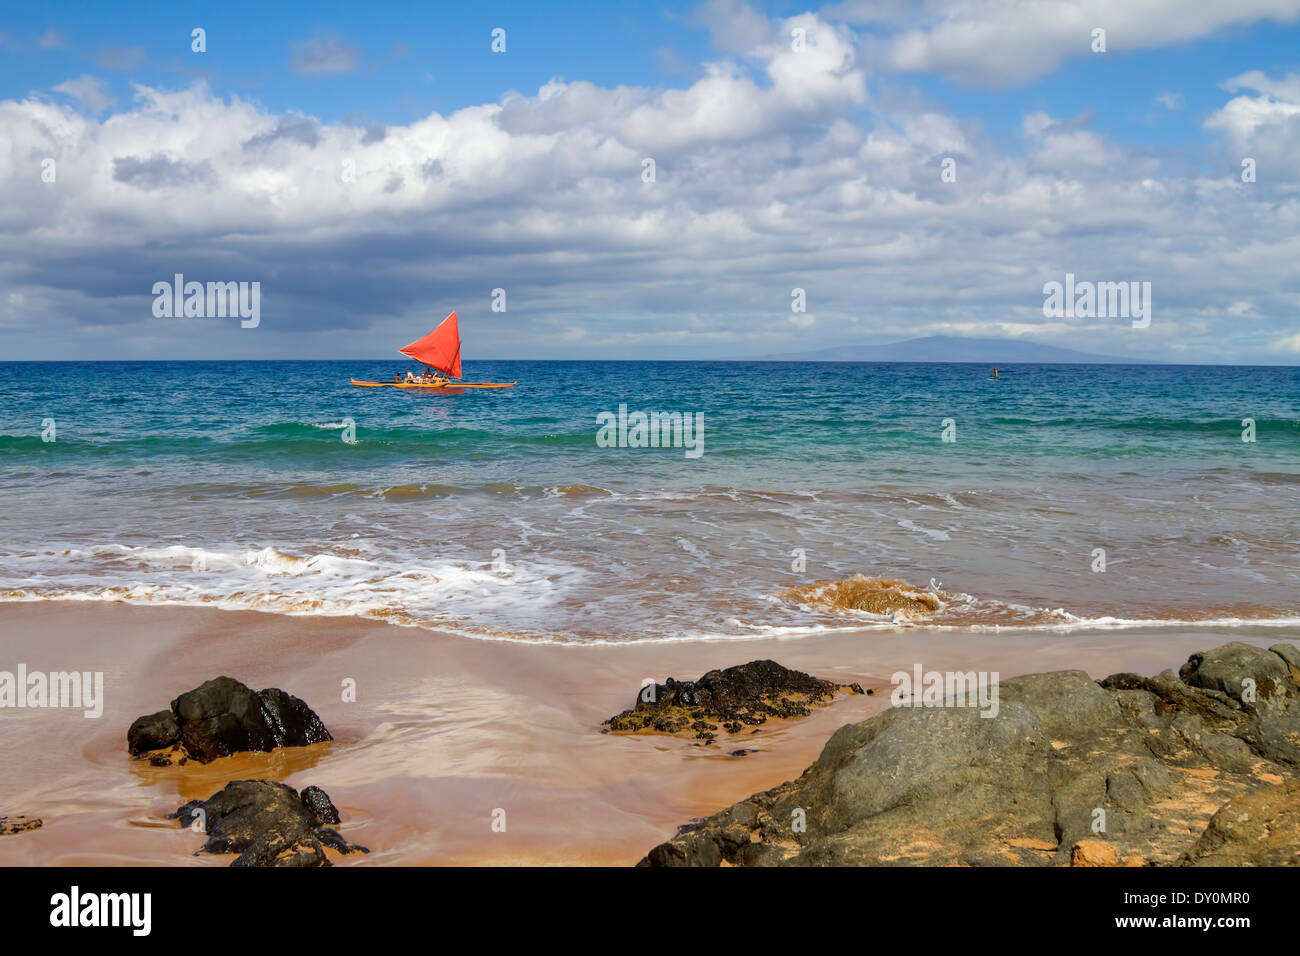 Hawaiian sailing canoe off Maui's south shore; Makena, Maui, Hawaii, United States of America - Stock Image